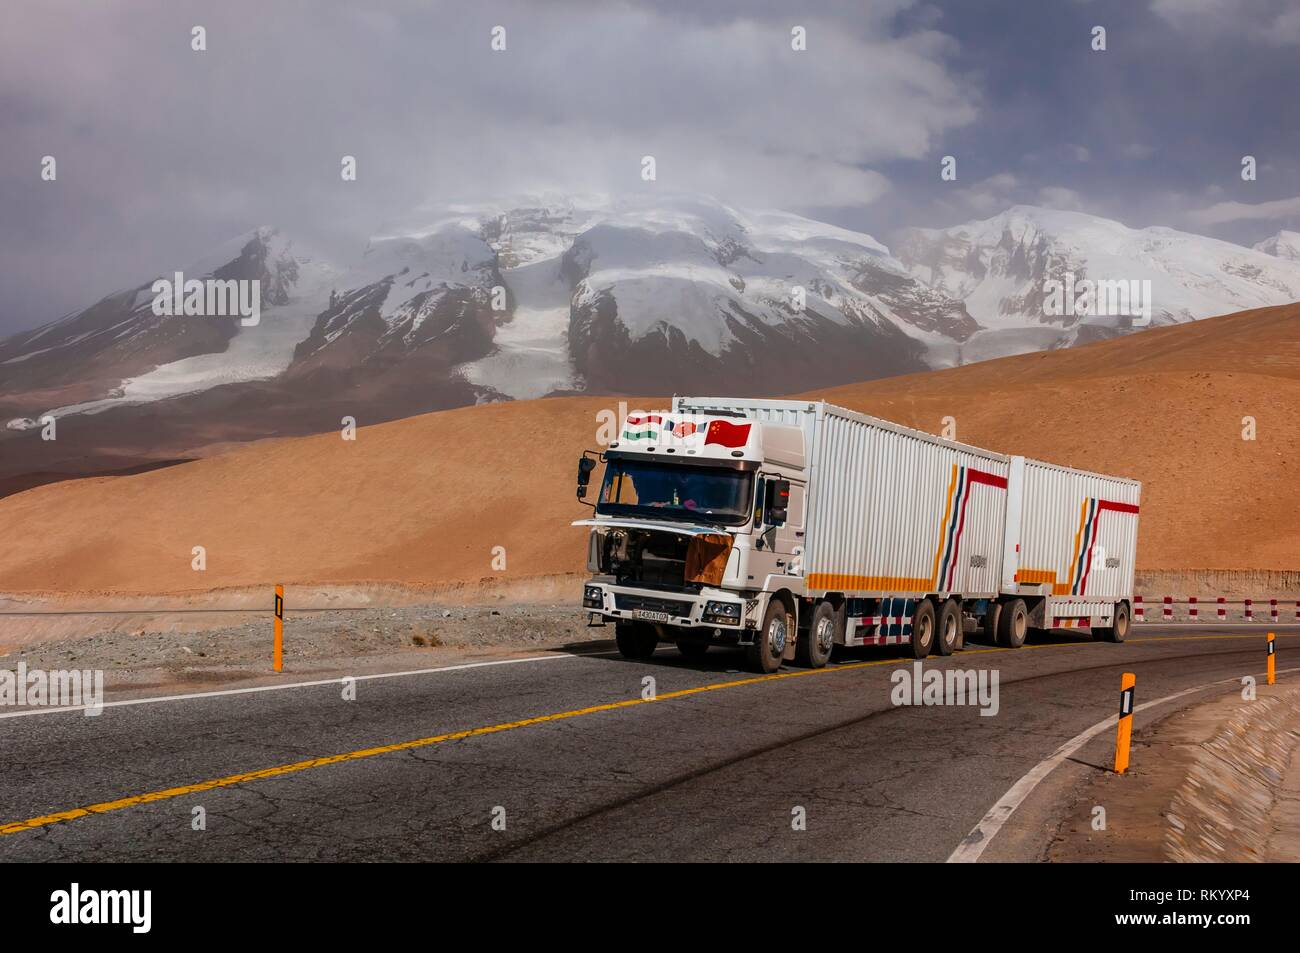 13,451 foot Suvax Pass along the Karakoram Highway passing through the Pamir Mountains in Xinjiang China. It is the highest paved international road - Stock Image